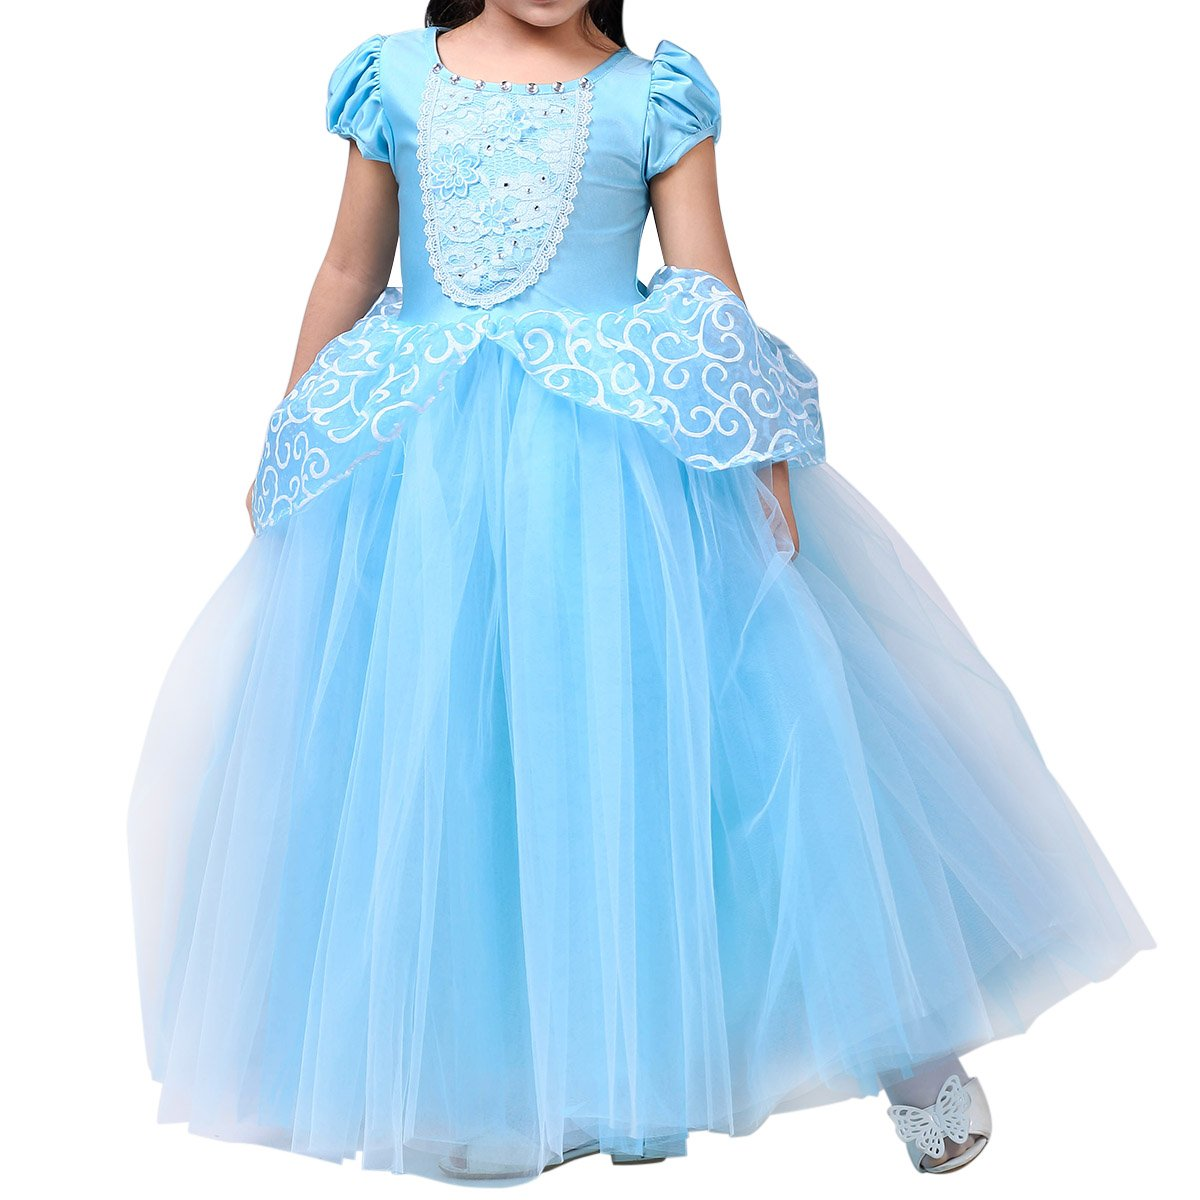 Enterlife Girls Princess Costume Cinderella Dress Special Edition Blue Party Deluxe Costume Disney Dress-up Set Halloween